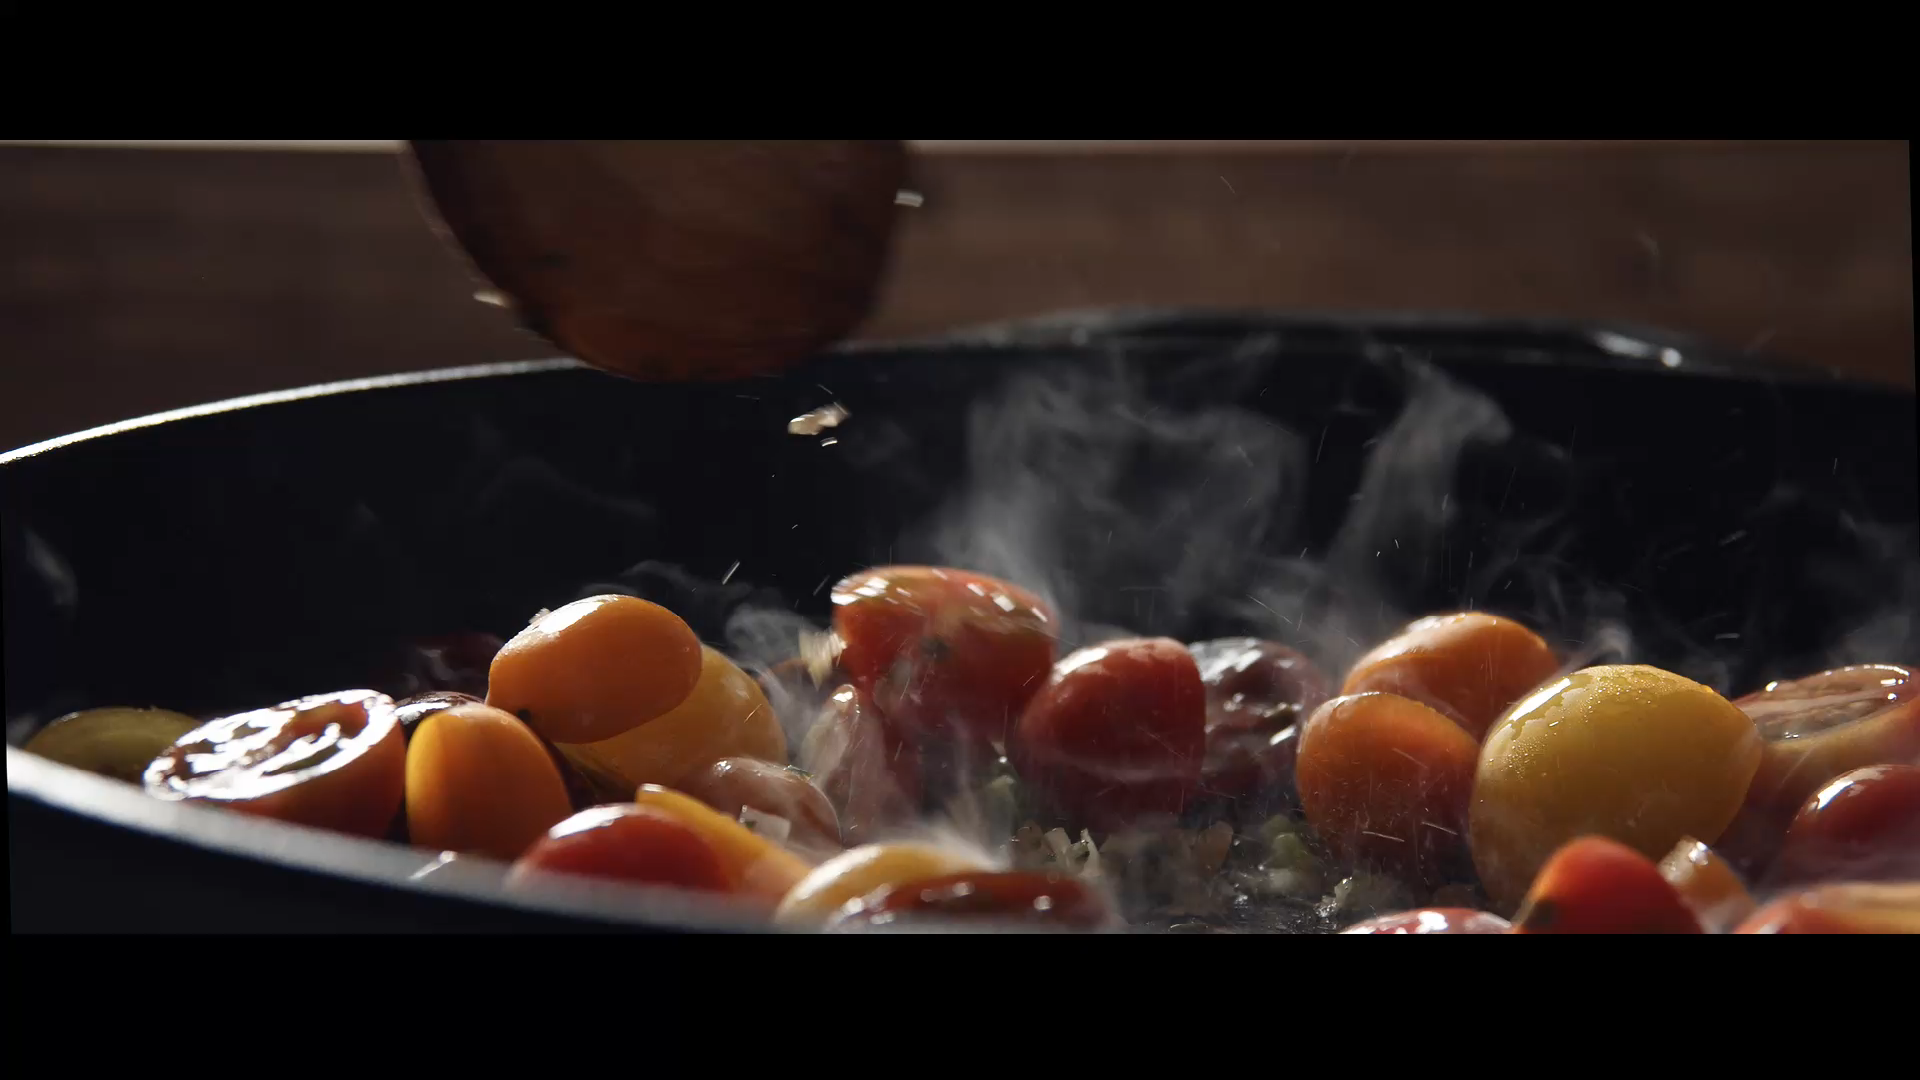 Filmed, prepped, cooked, eaten and color graded with precious tips from @theqazman 's Freelance Master Course! #colorgrading #cooking #cookingvideos #foodvideo #davinciresolve #onset #setlife #studiolife #colorinspiration #filmmaker #postproduction #editingroom #chicagofilmmakers #cinematicfood #filmmaking #bmpcc4k #blackmagicdesign #colorgrade #colourist #colorist #filmmakersworld #filmmakers #doplife #directorofphotography #foodfilming